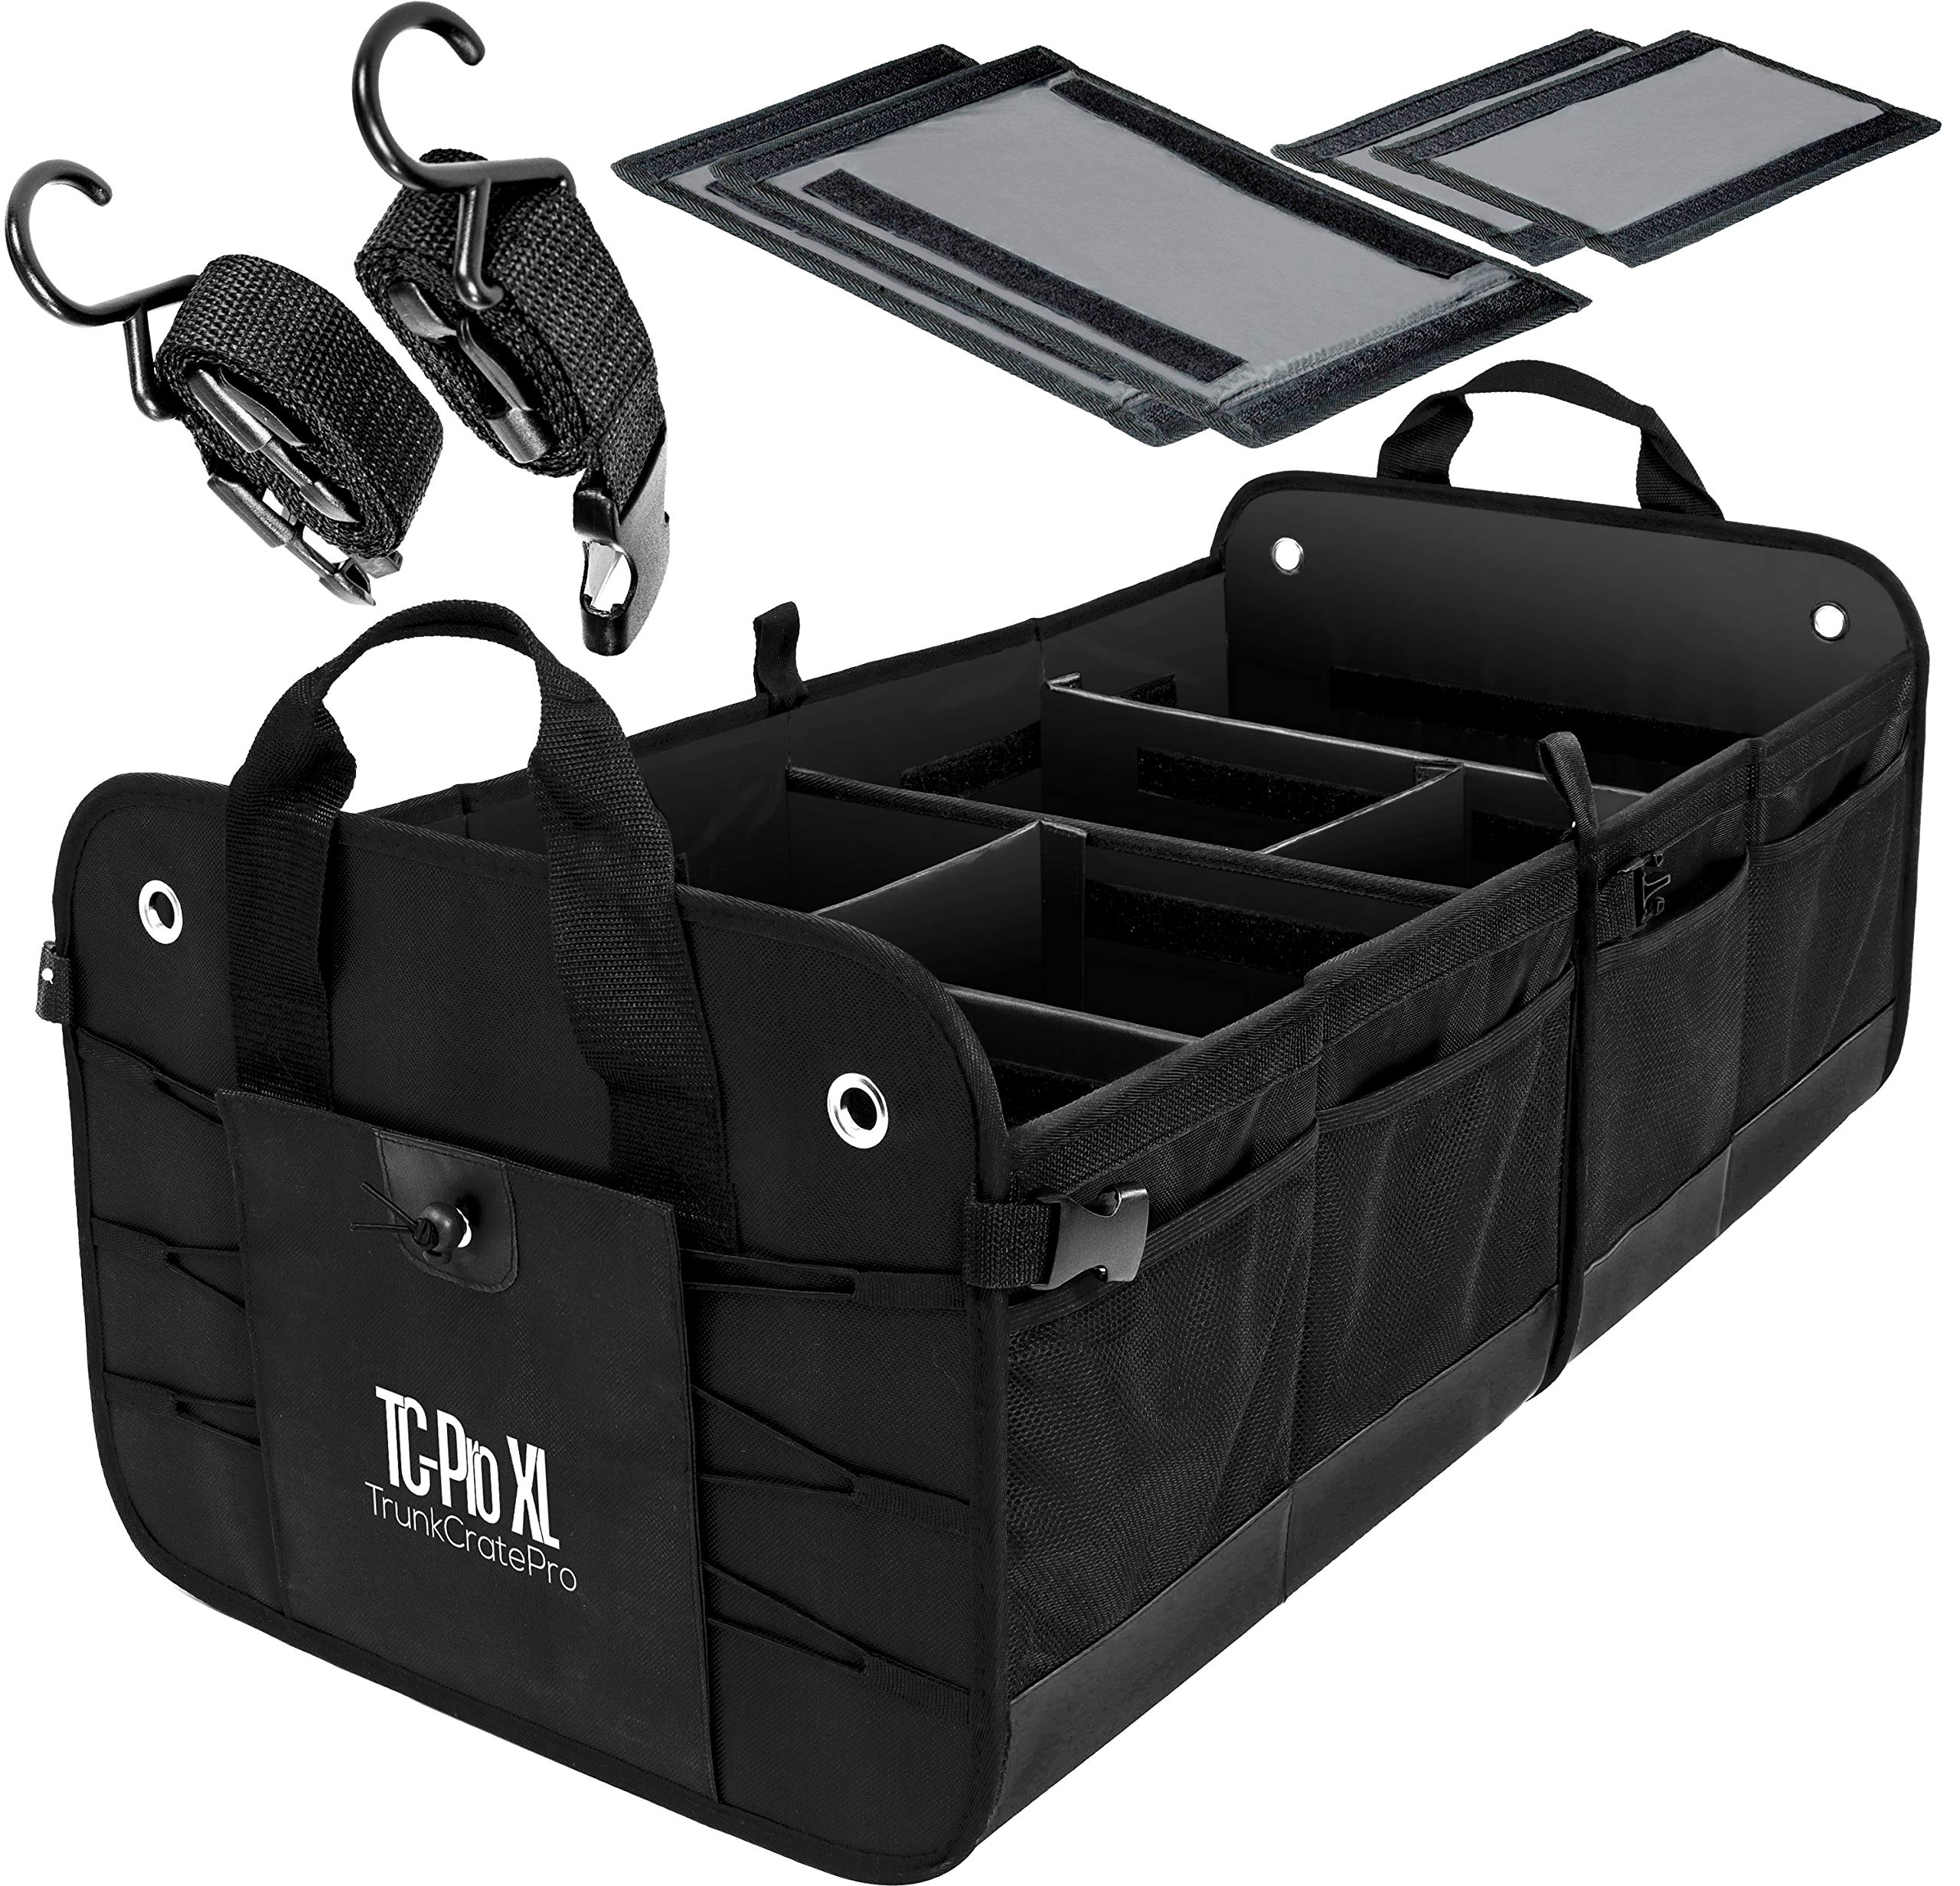 TrunkCratePro Extra Large Multi Compartments Collapsible Portable Trunk Organizer with metal hooks, recommended for REALLY large loads!